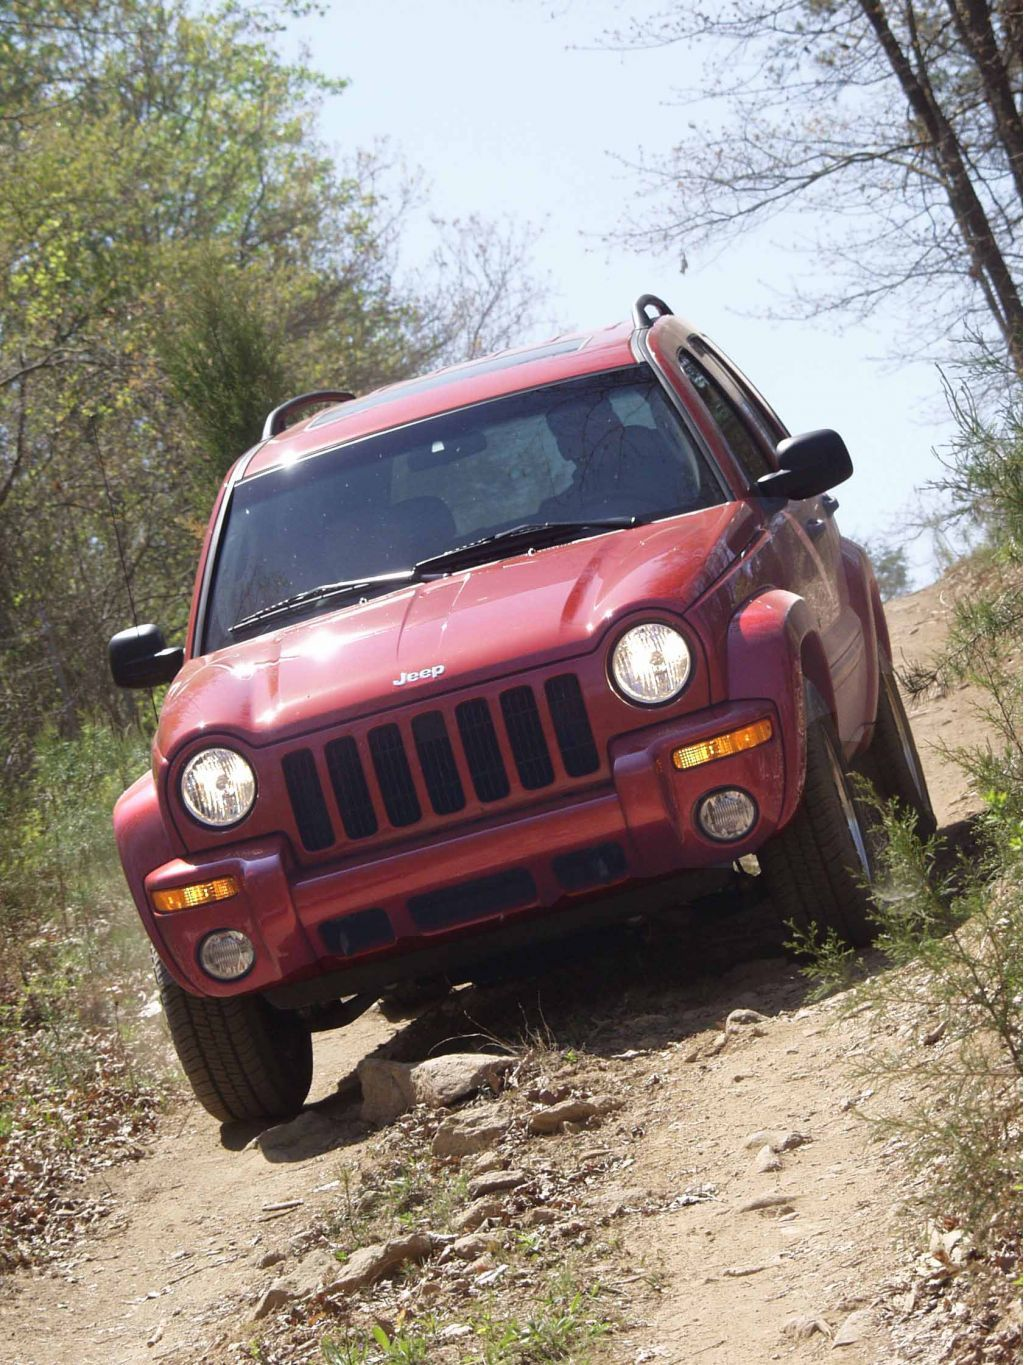 Jeep liberty 2002 recalls jpeg http carimagescolay casa jeep